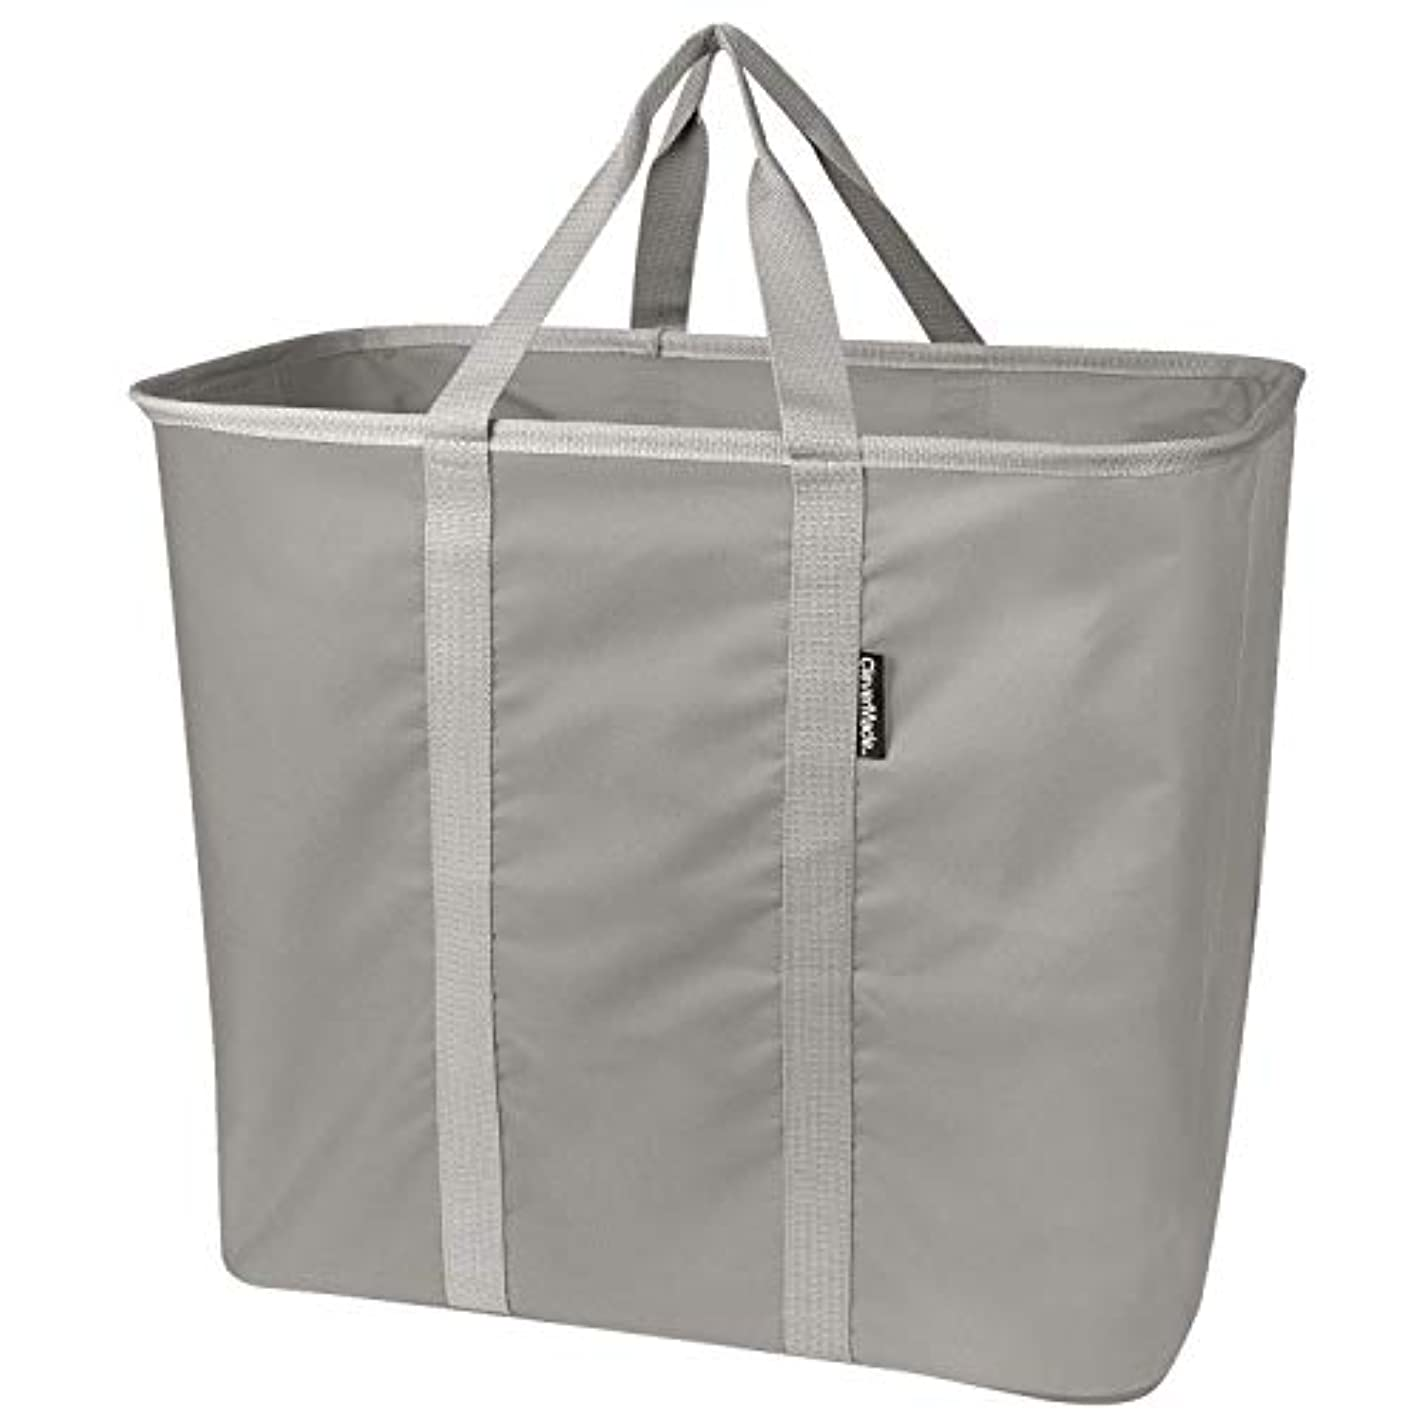 CleverMade Collapsible Laundry Tote, Large Foldable Clothes Hamper Bag, LaundryCaddy CarryAll XL Pop Up Storage Basket with Handles, Grey